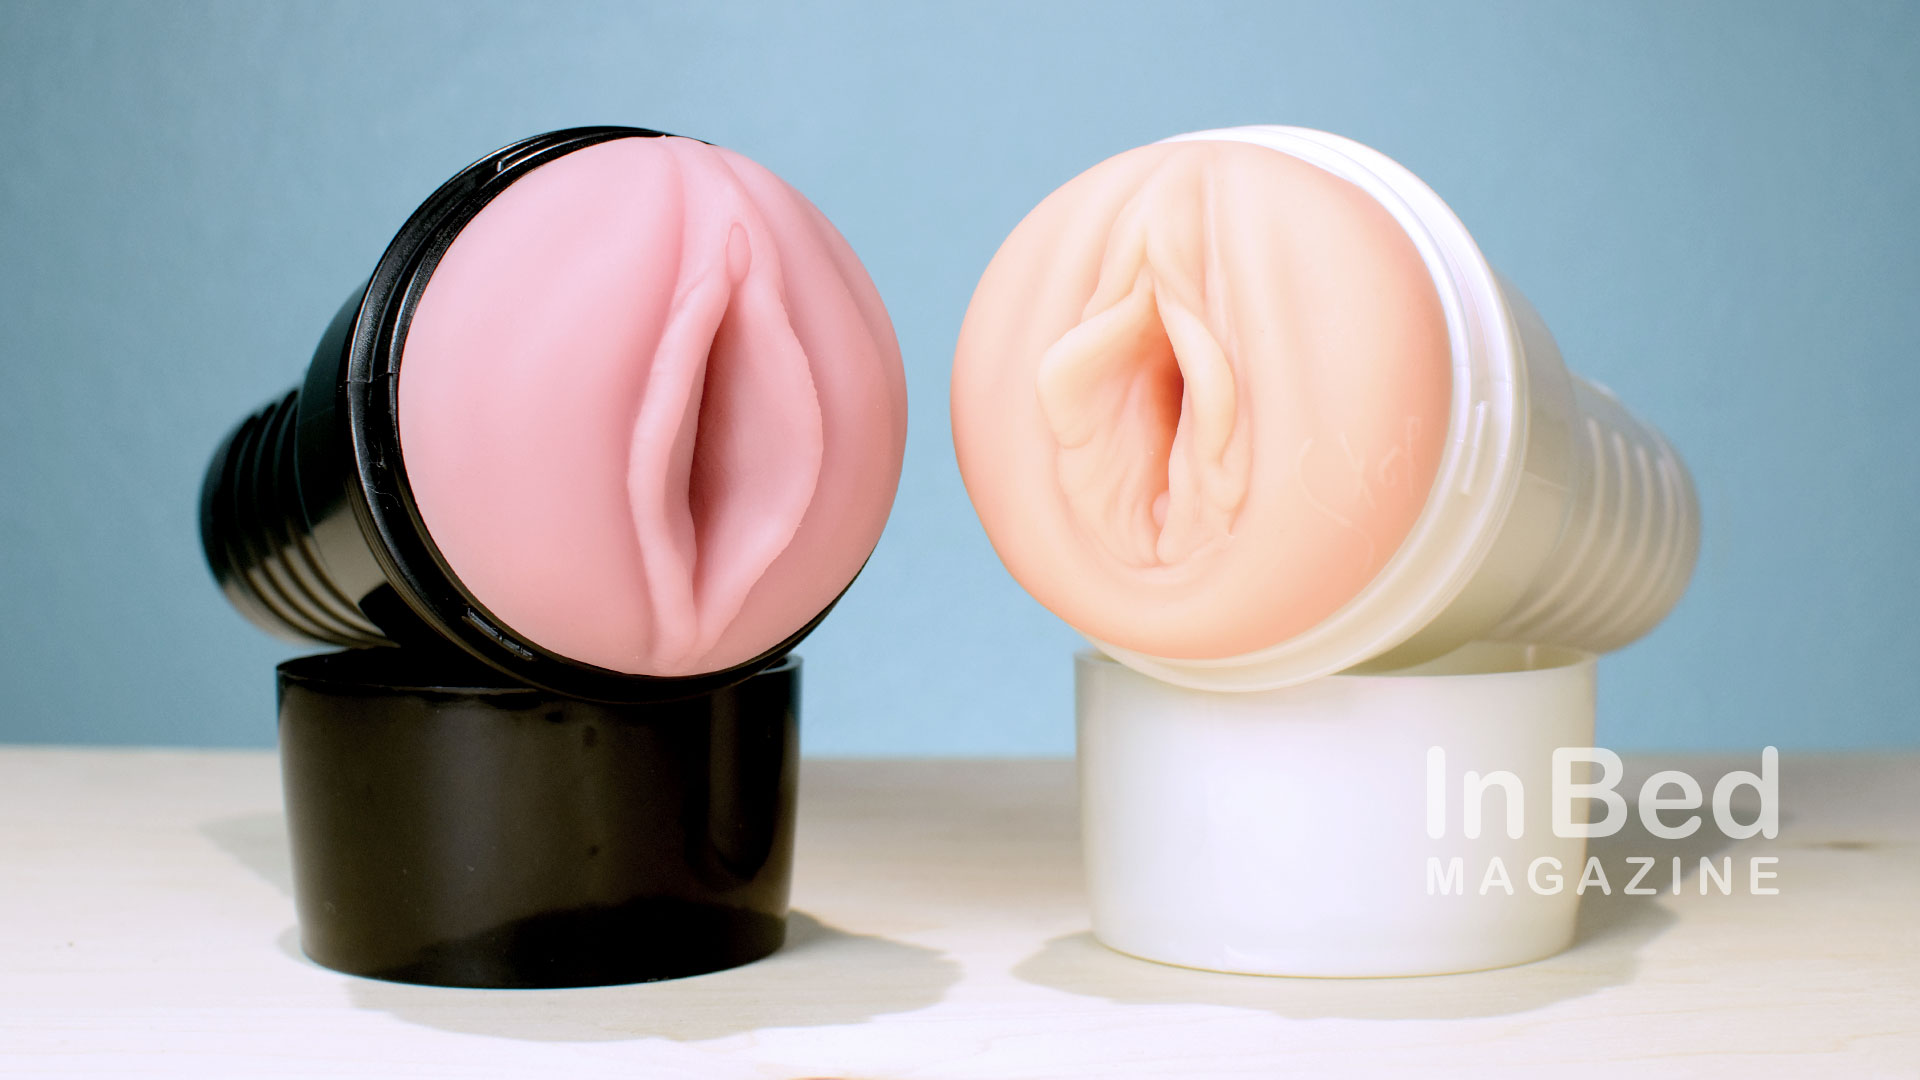 Details Fleshlight Male Pleasure Products